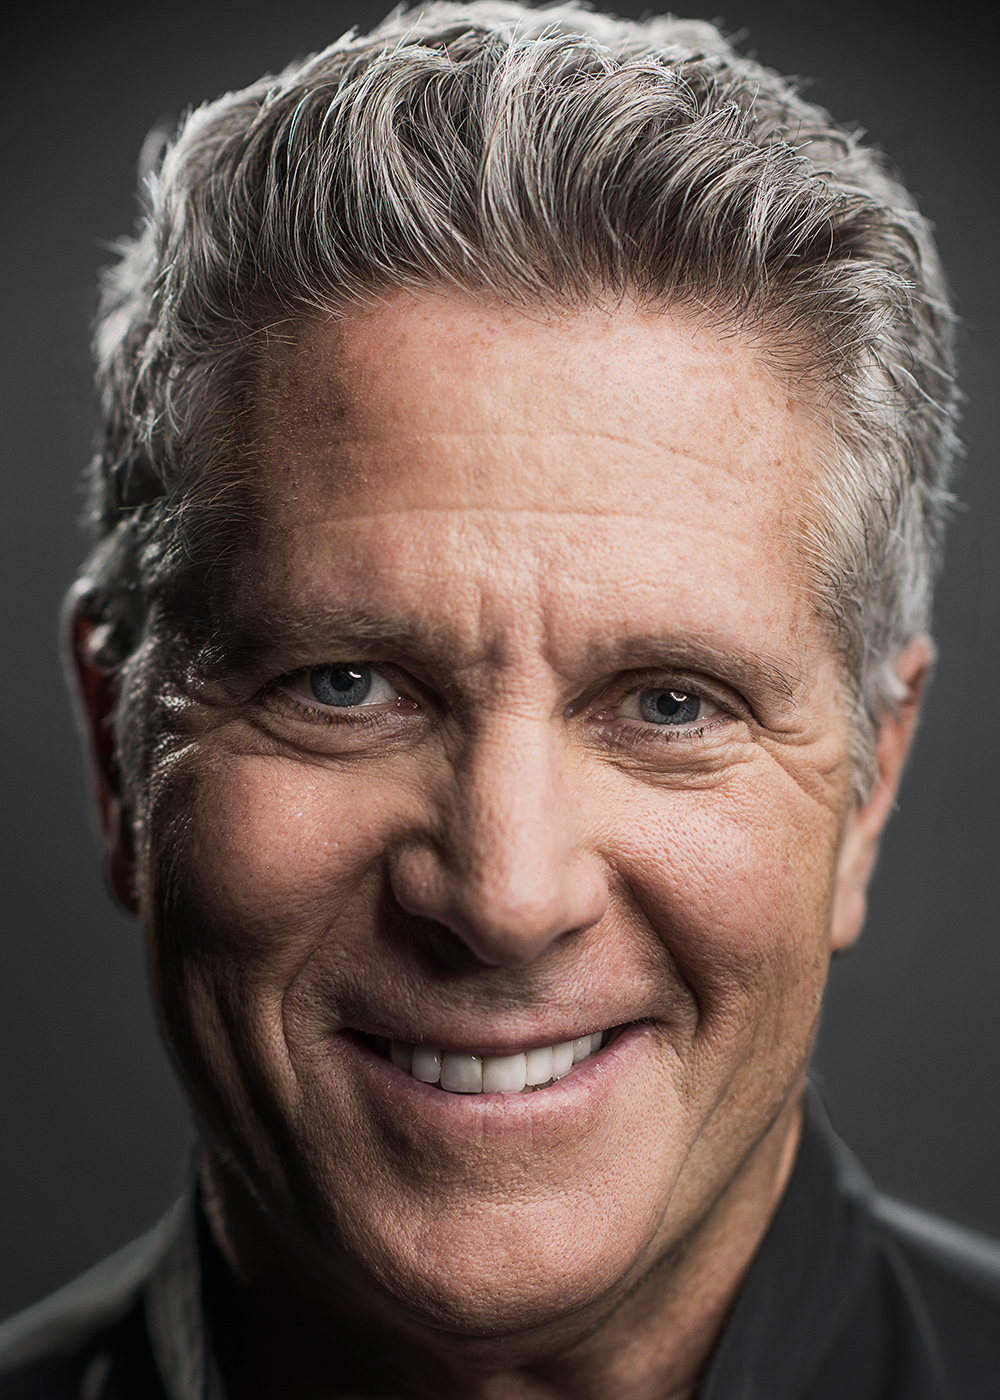 Donny_Deutsch016